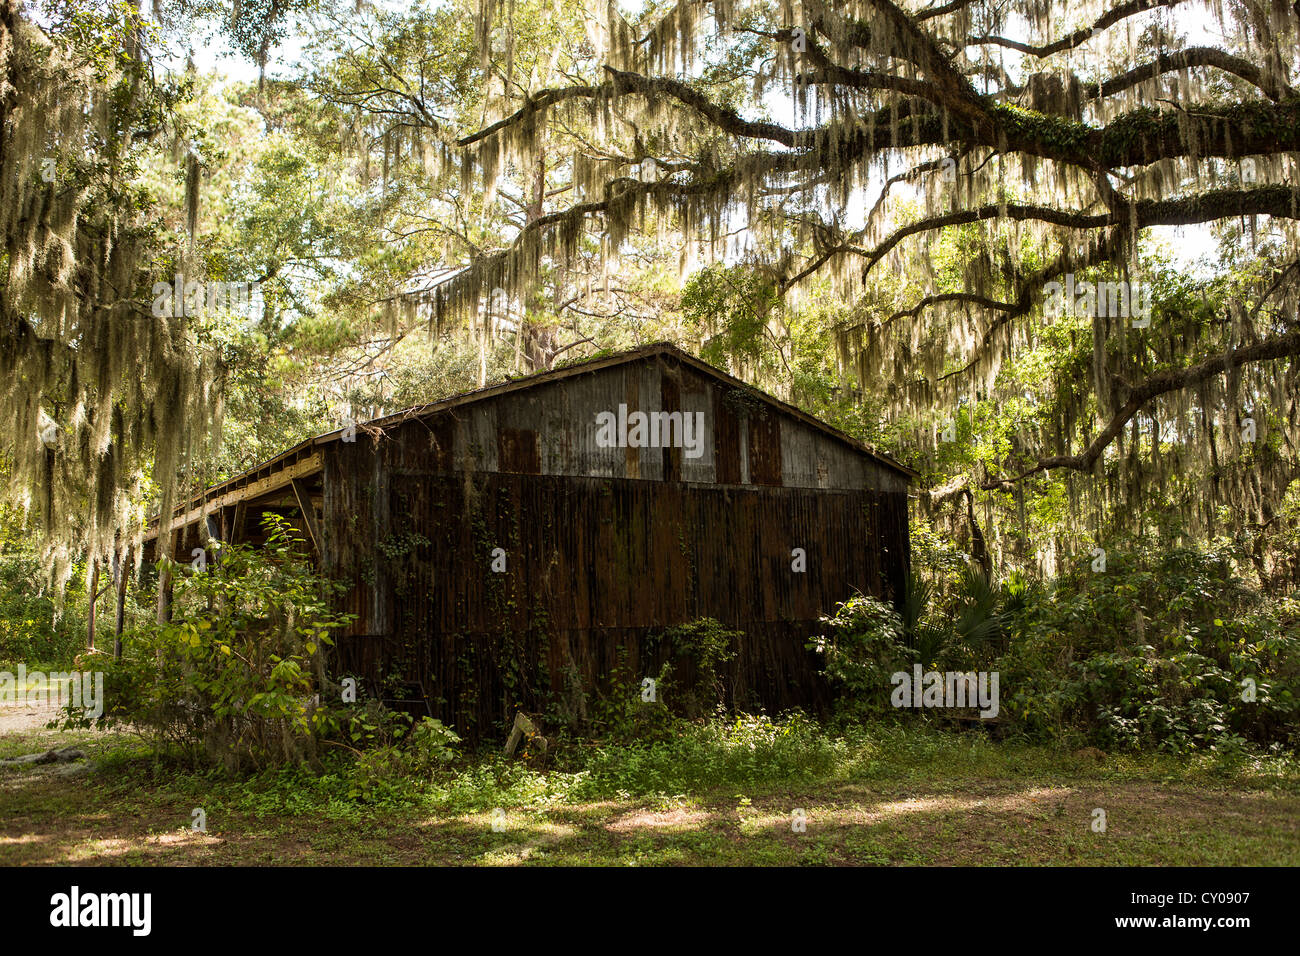 An old shed among live oak trees with spanish moss at Honey Horn Plantation on Hilton Head Island, SC - Stock Image